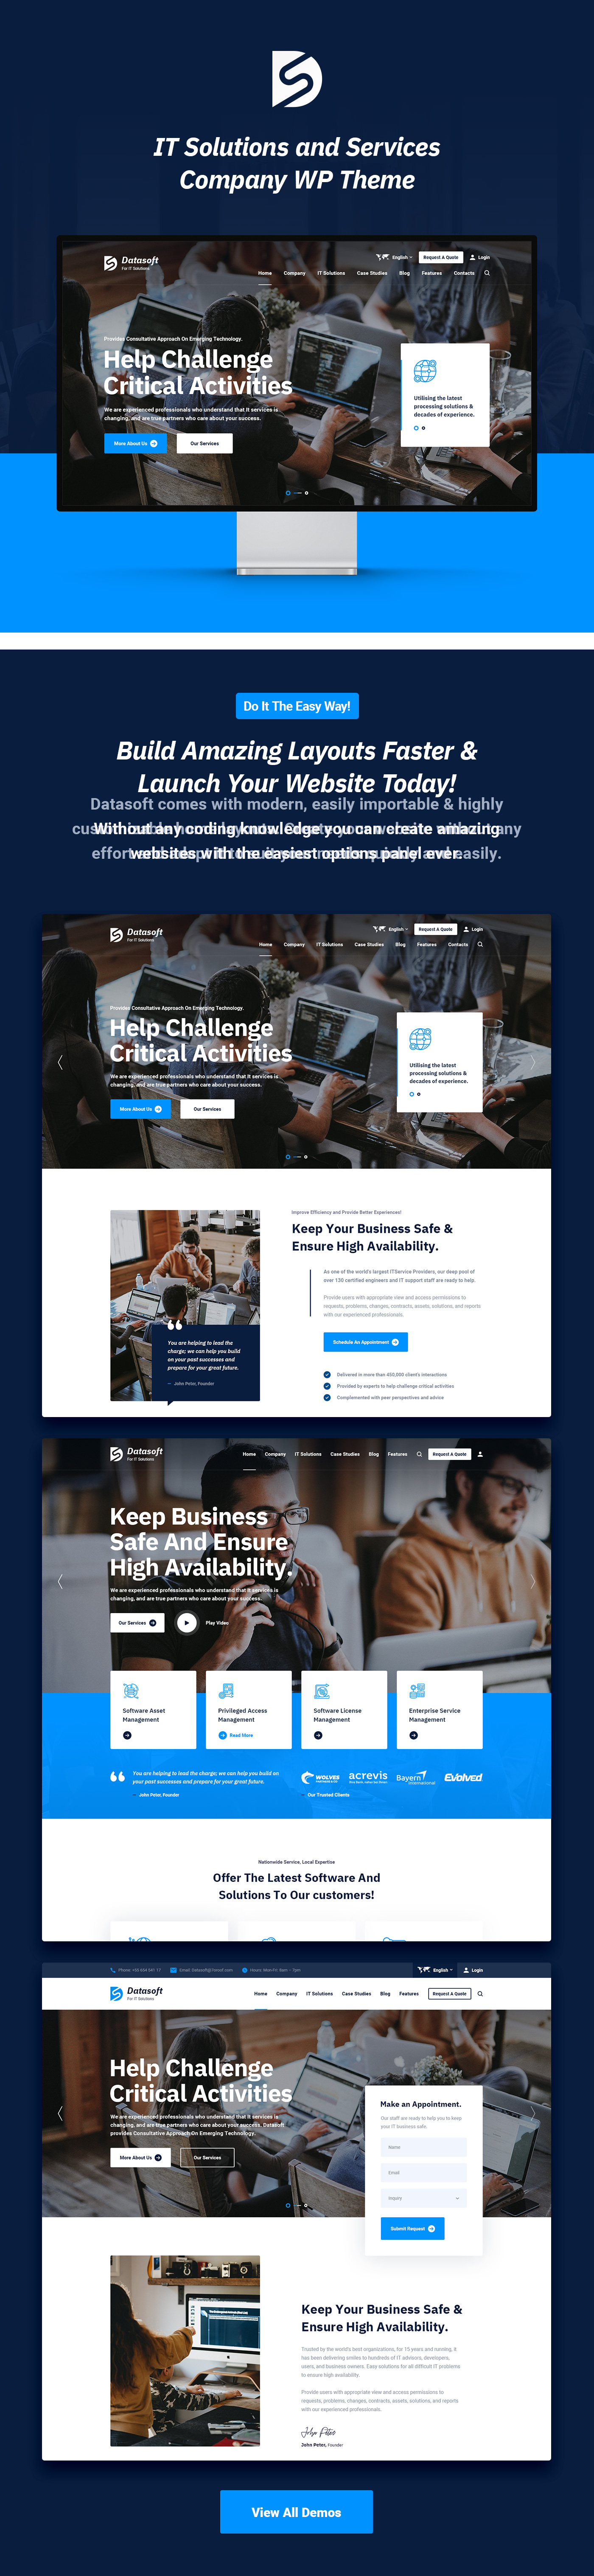 Datasoft - IT Solutions & Services HTML5 Template - 5